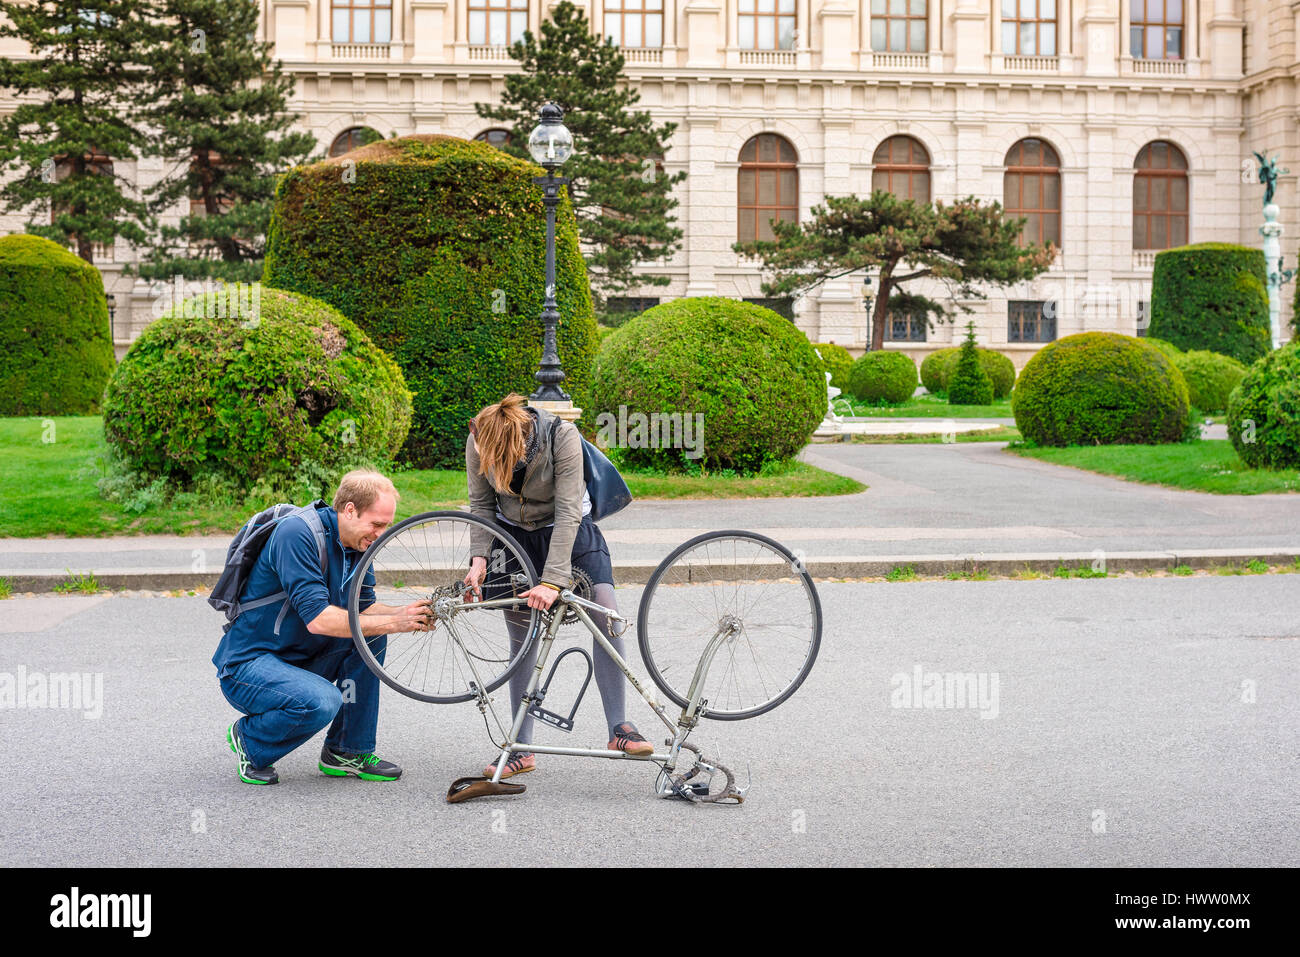 Helping hand, a man comes to the assistance of a young woman whose bike chain is broken in Maria Theresienplatz, - Stock Image